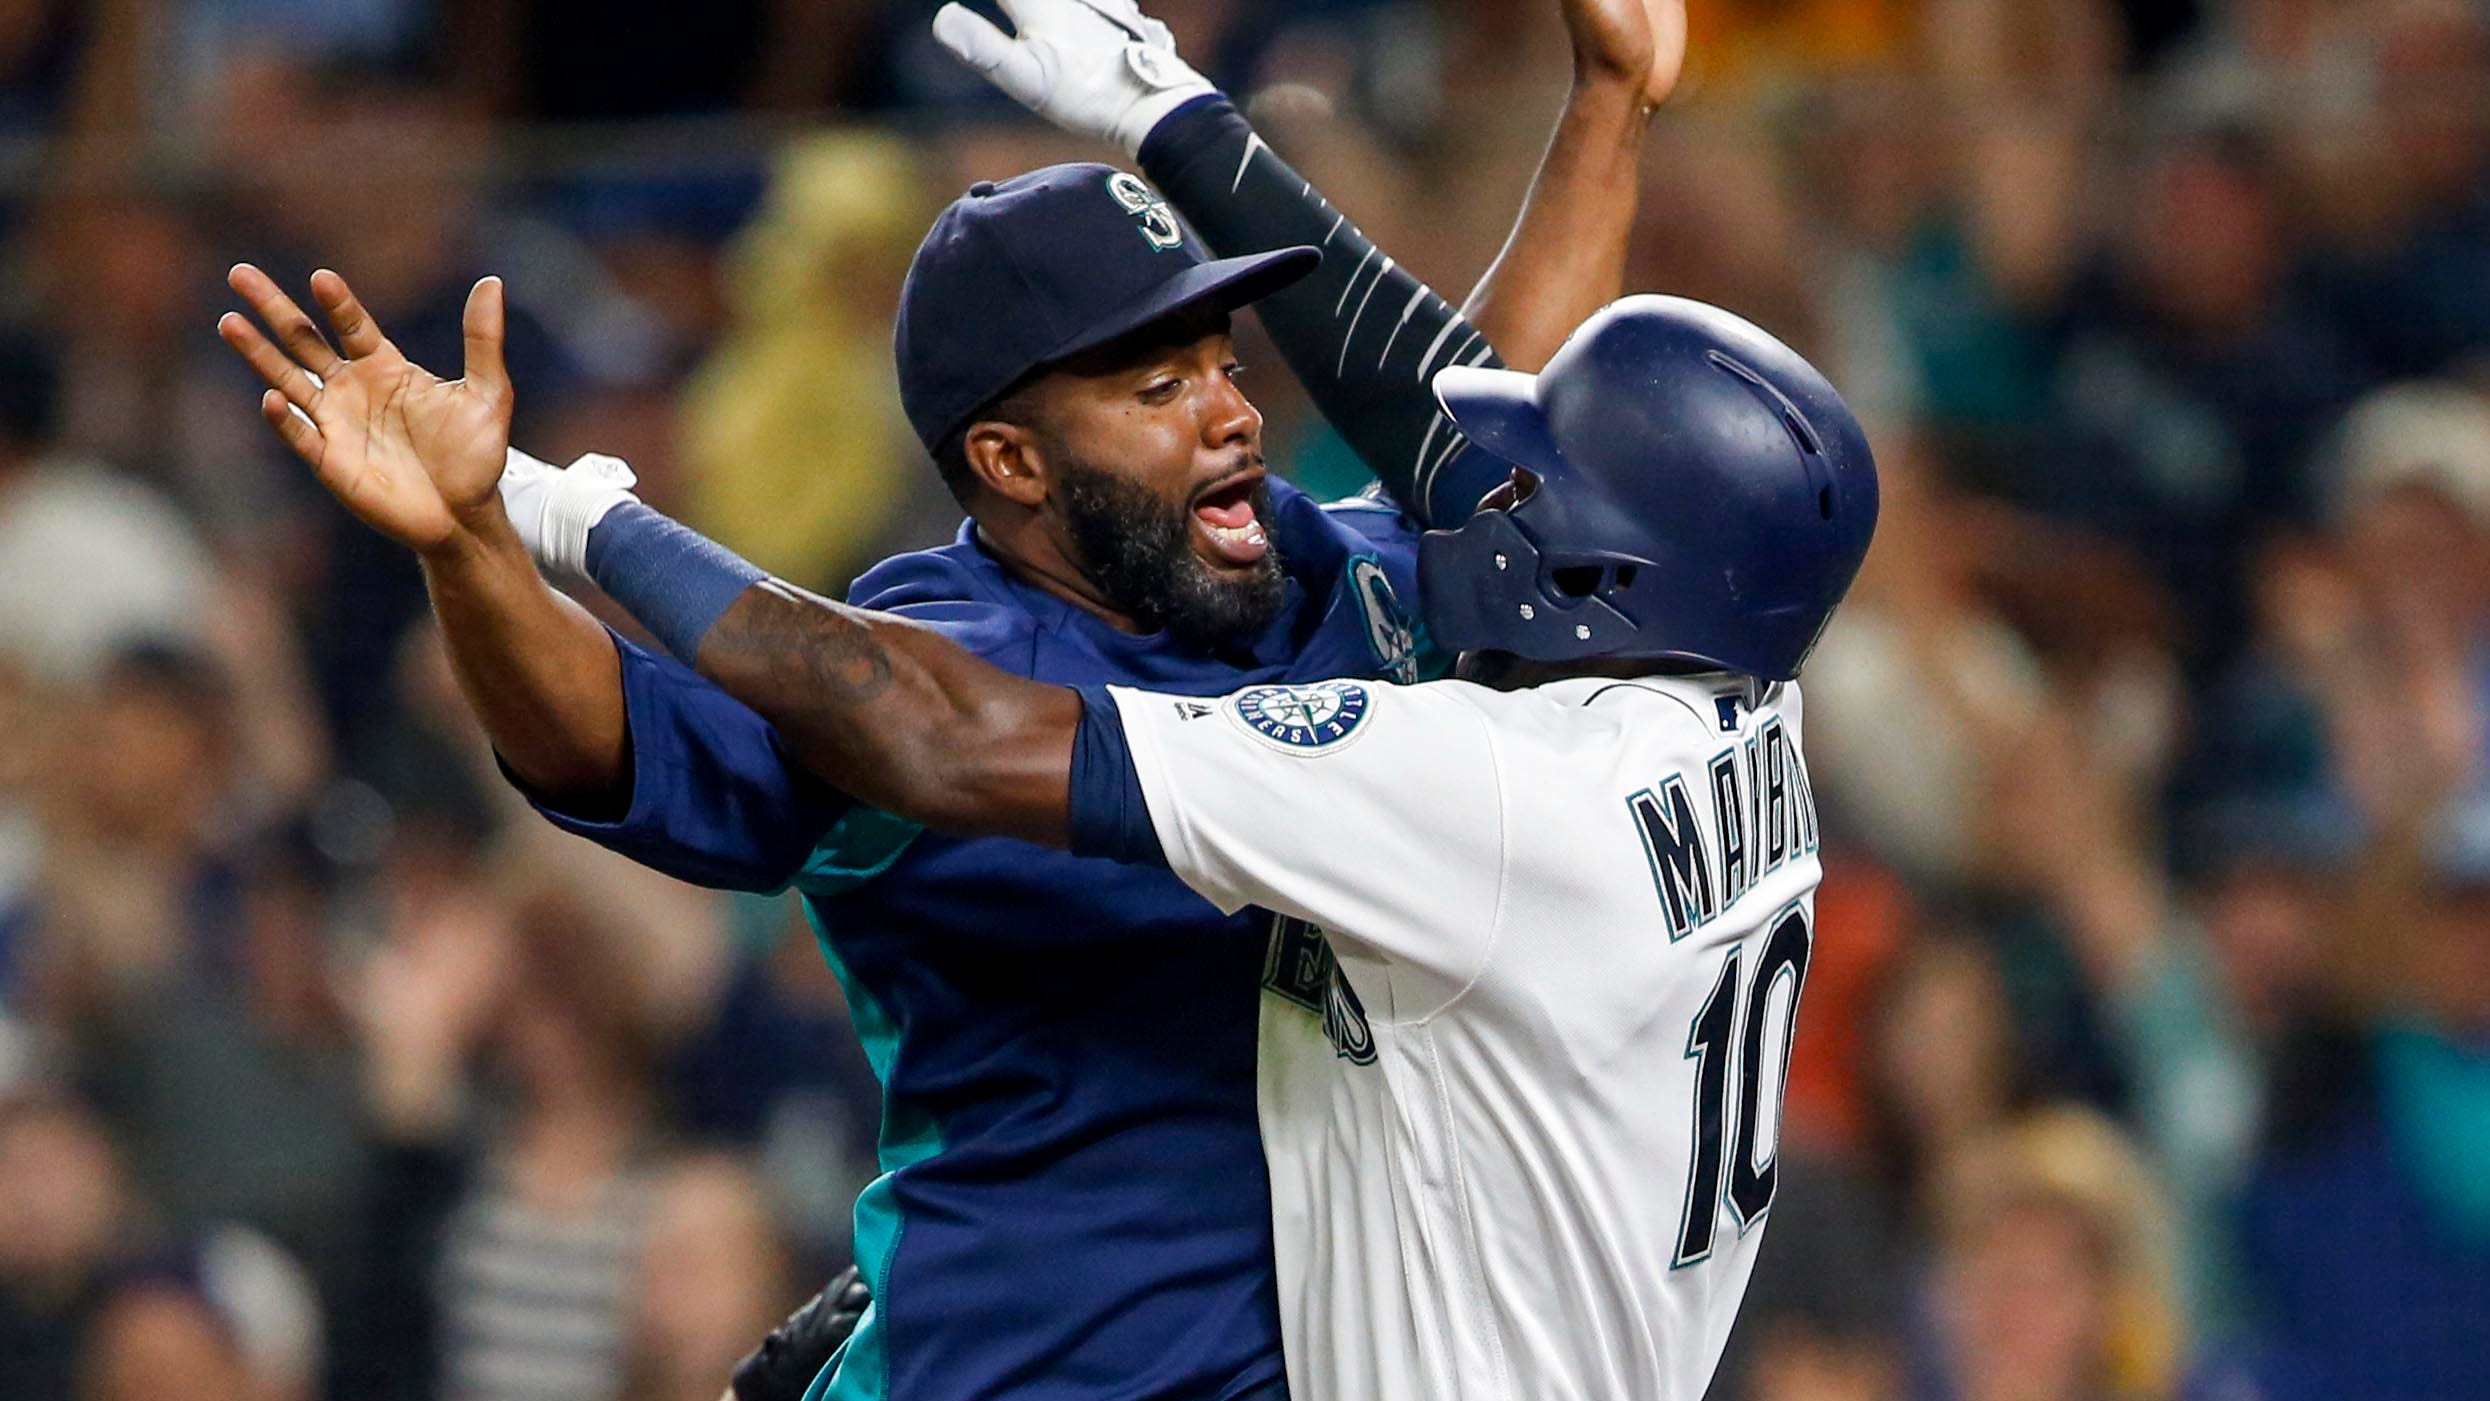 Cameron Maybin (10) celebrates with Denard Span (4) after scoring the winning run for the Mariners.